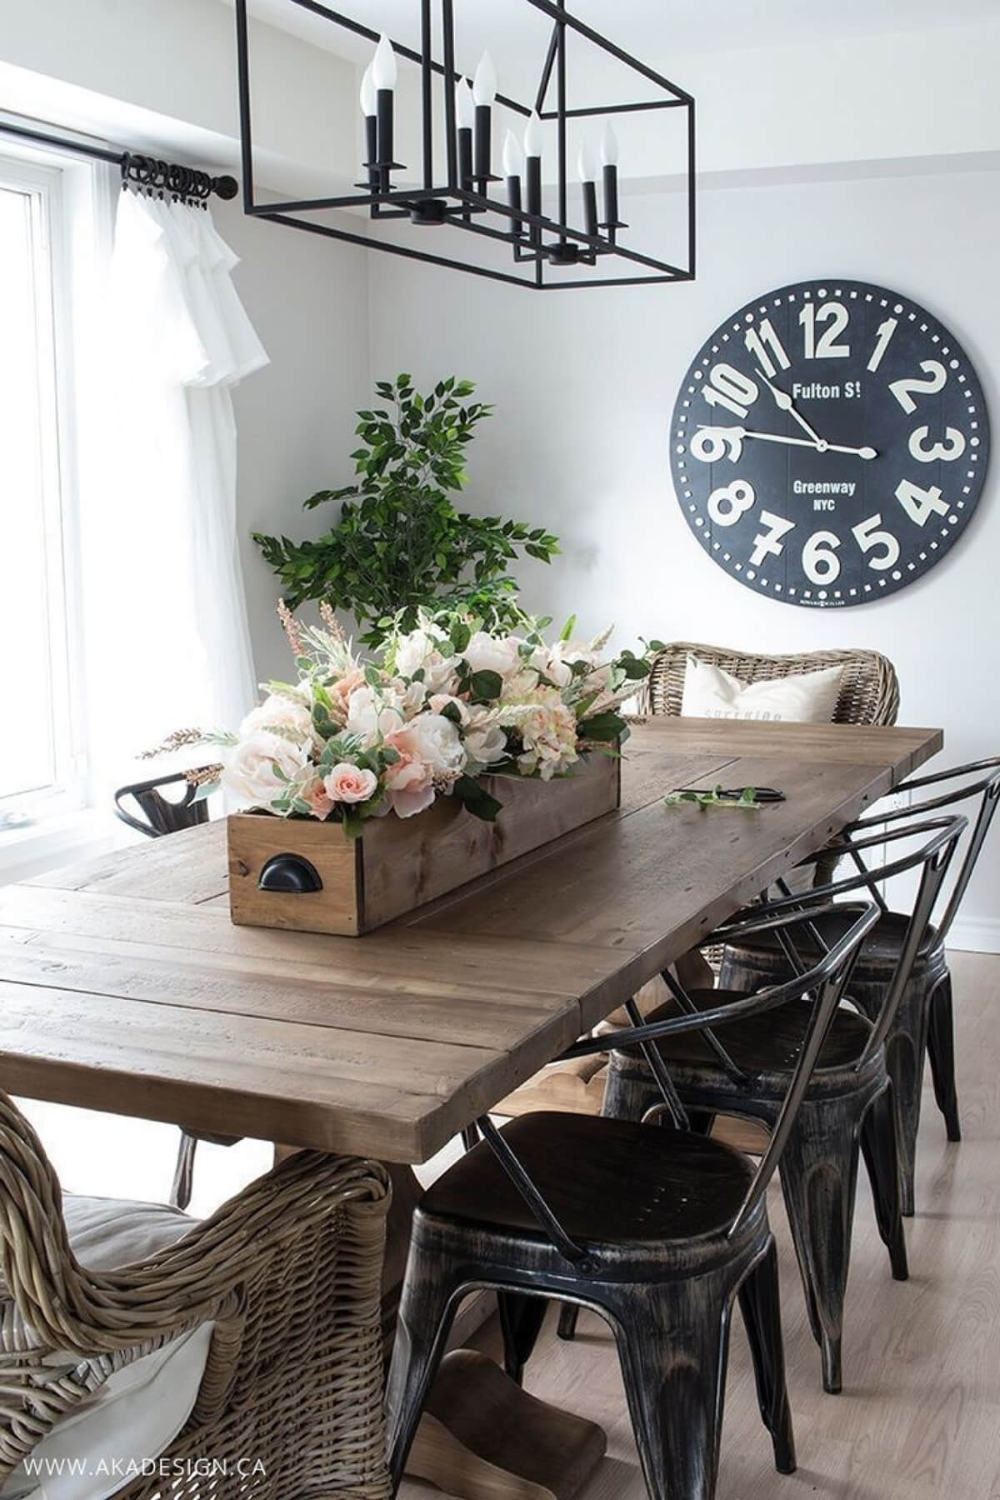 36 Industrial Home Decor Ideas That Will Make You Fall In Love With This Style In 2021 Modern Farmhouse Dining Dining Room Table Centerpieces Modern Farmhouse Dining Room